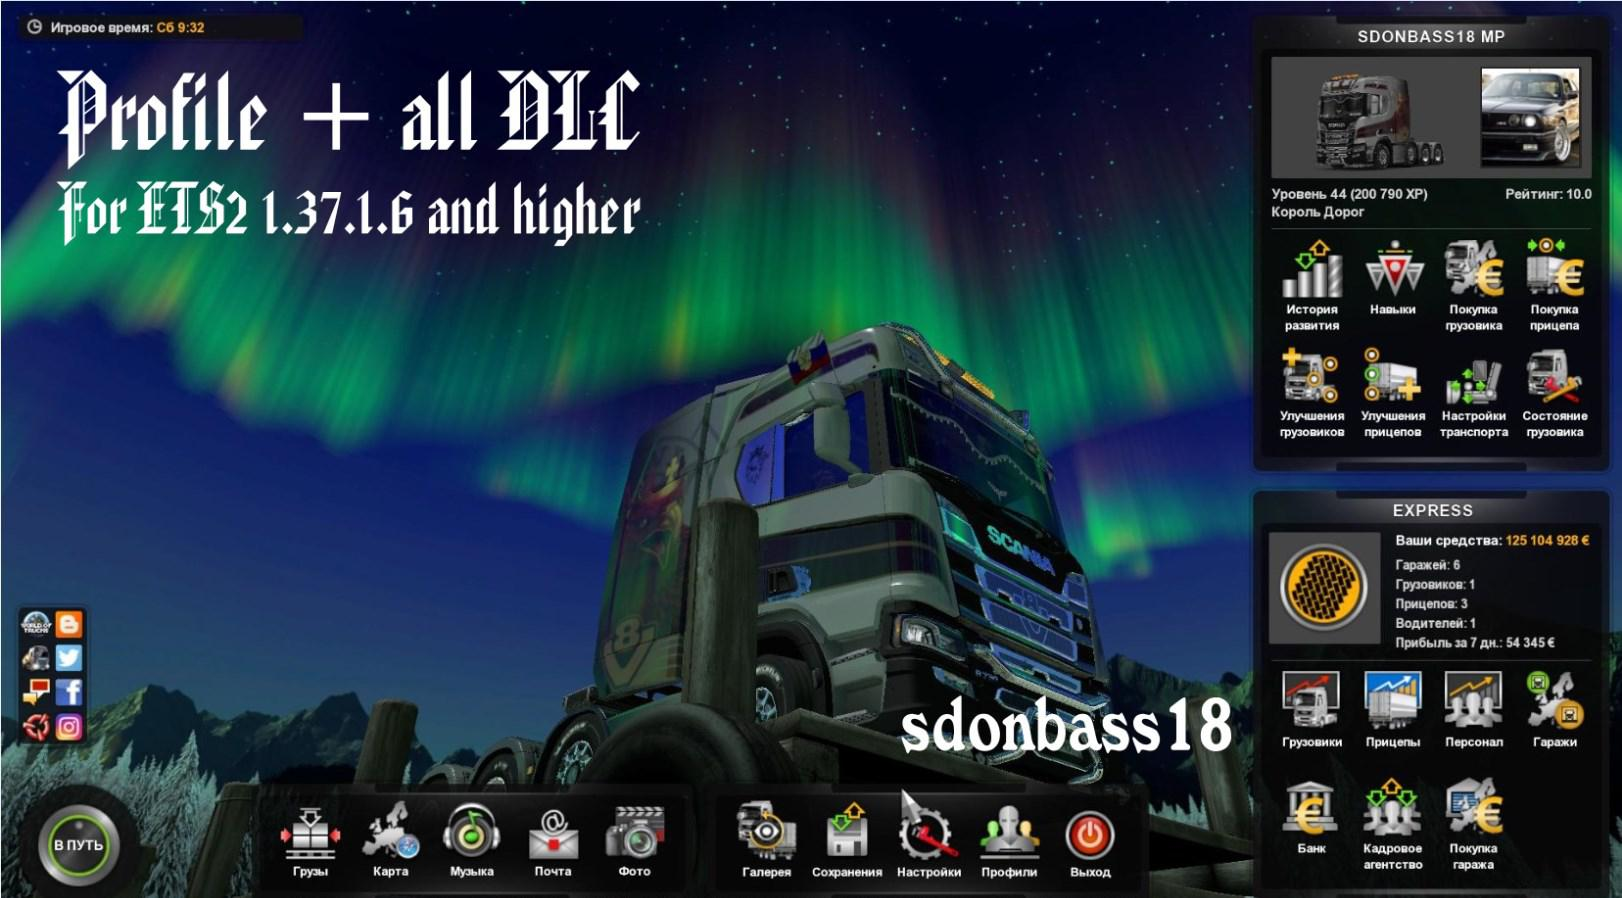 ETS2 - Profile + All DLC V1.0 (1.37.x)